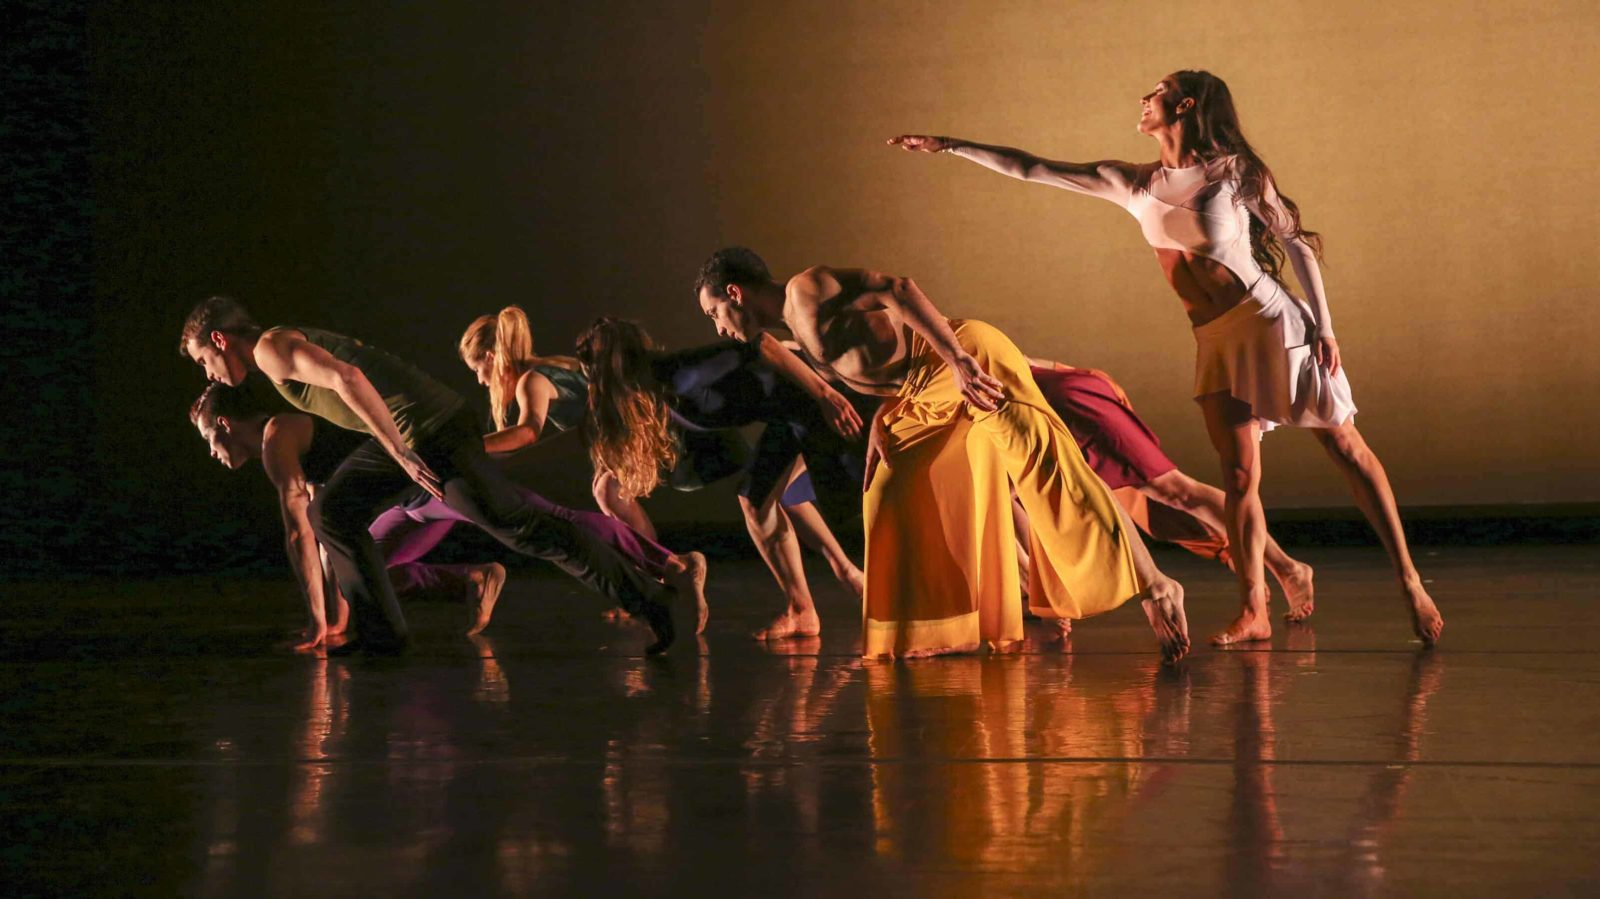 Parsons Dance, shown here performing 'Introduction,' appears regularly at Performance Space 21 in August.